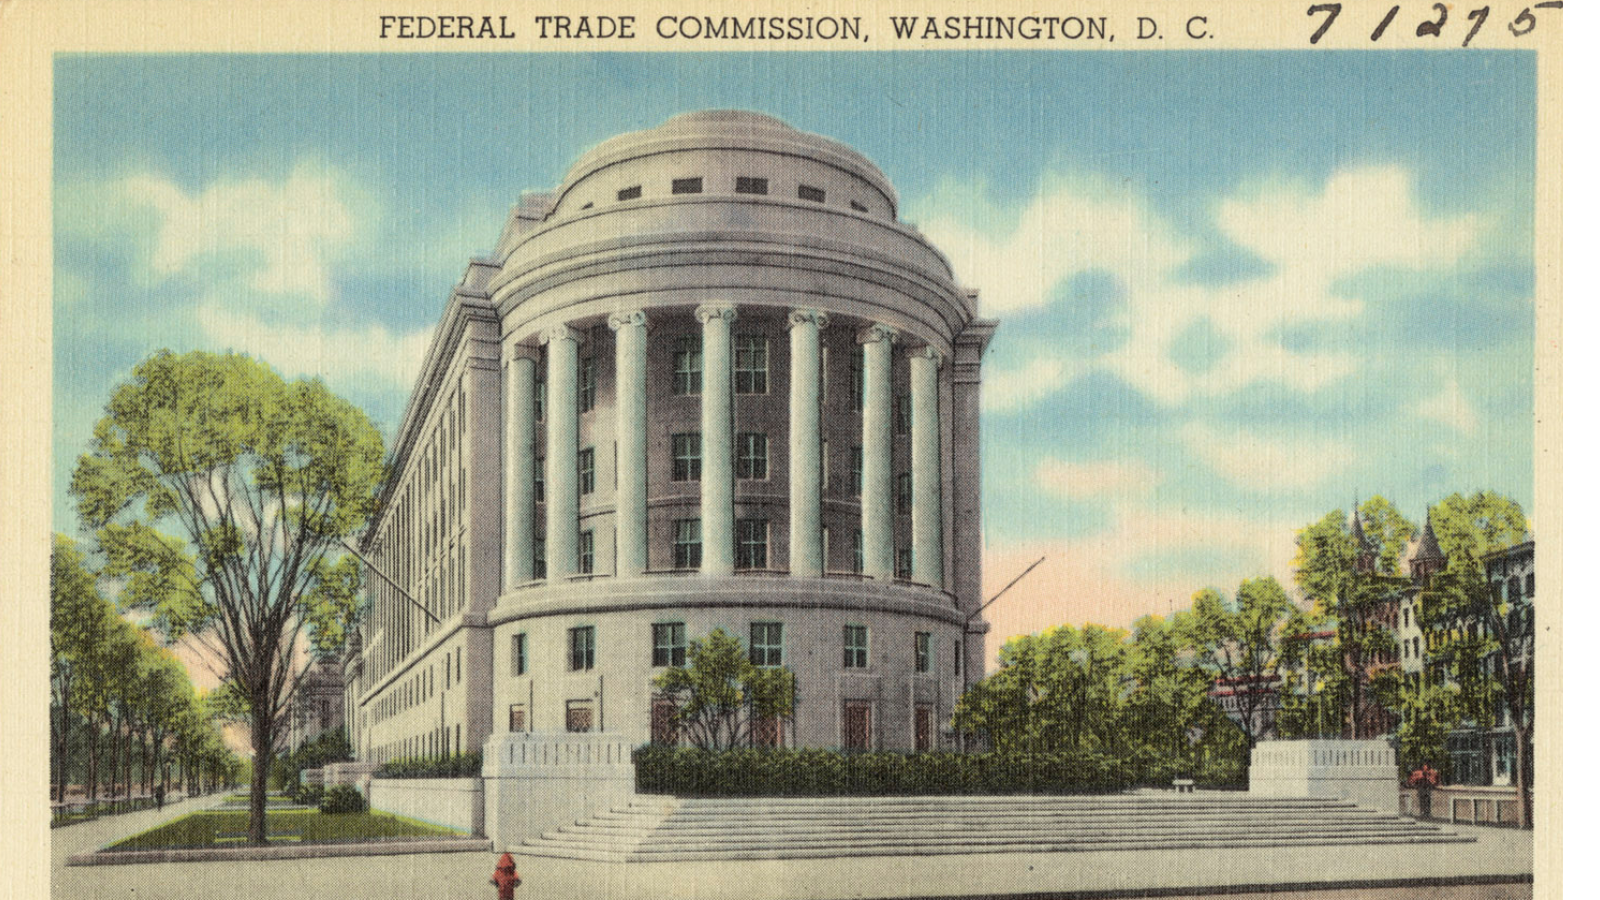 Old postcard of FTC building.